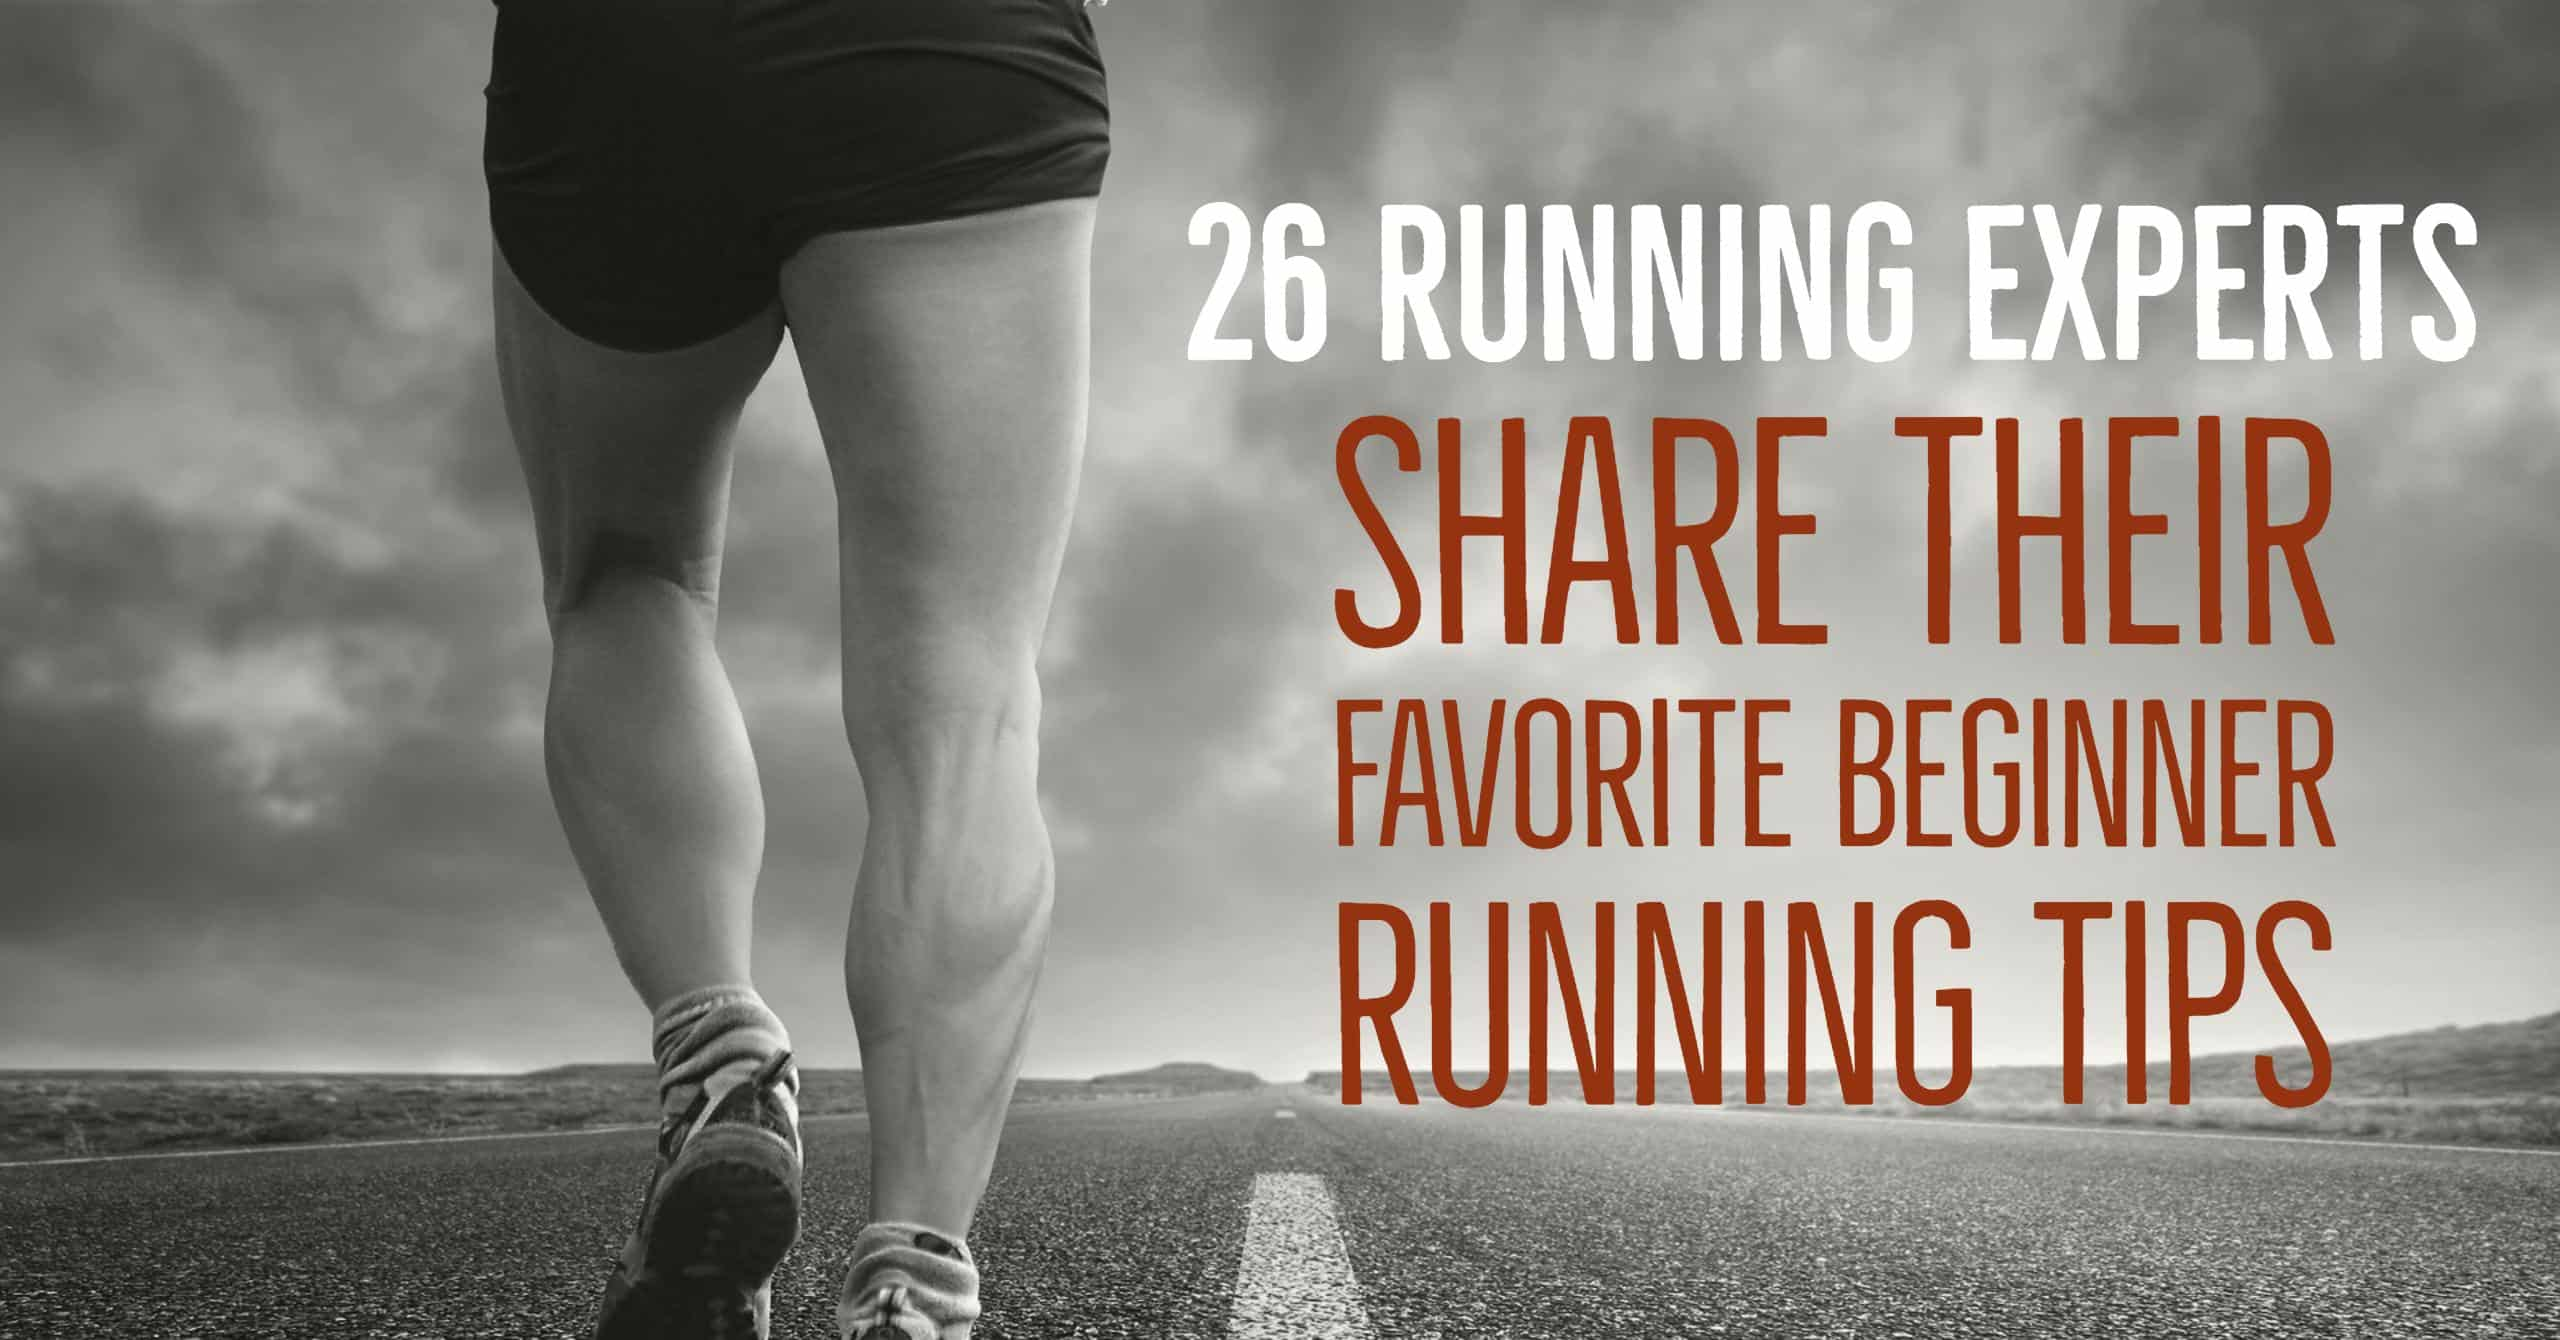 26 of the top running experts share their favorite beginner running tips.